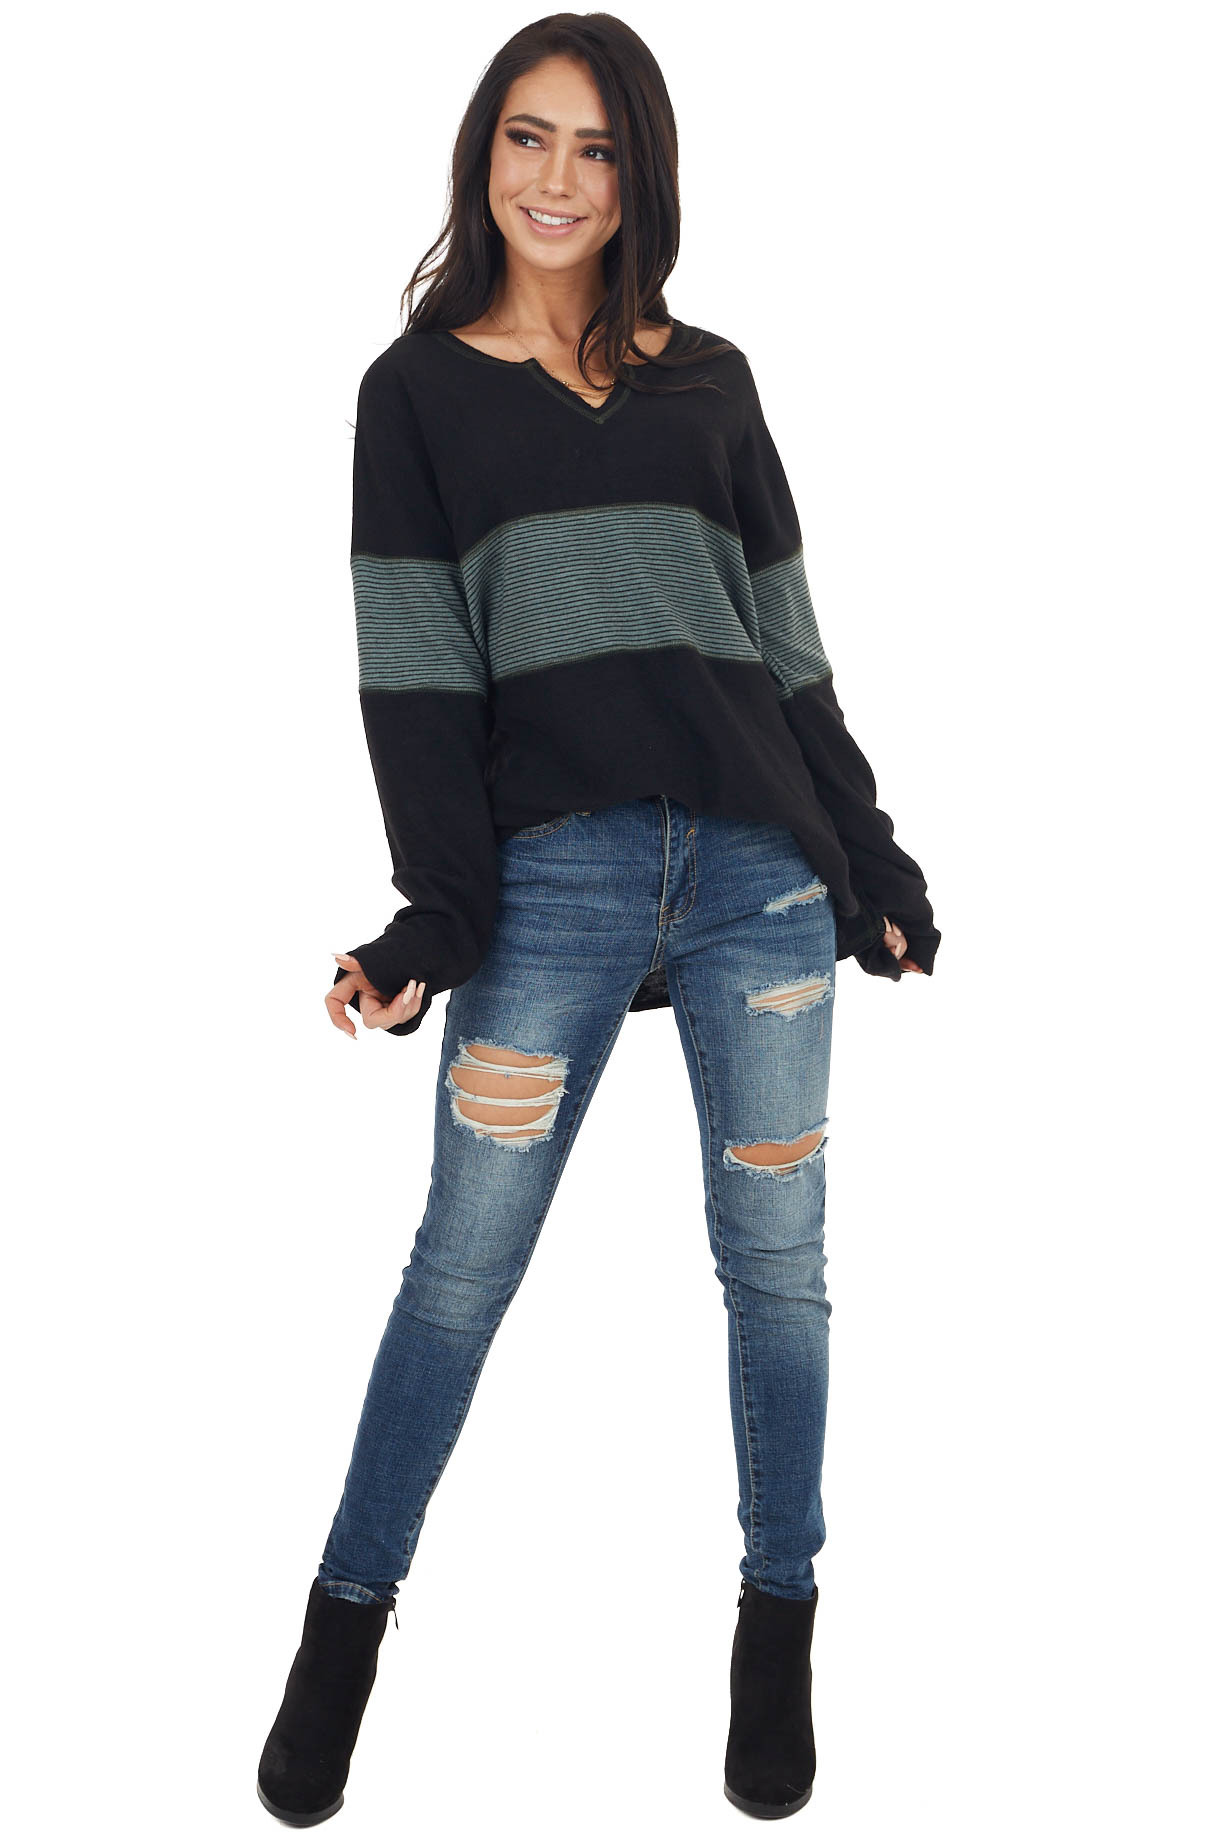 Black and Sage Super Soft Striped Colorblock Long Sleeve Top